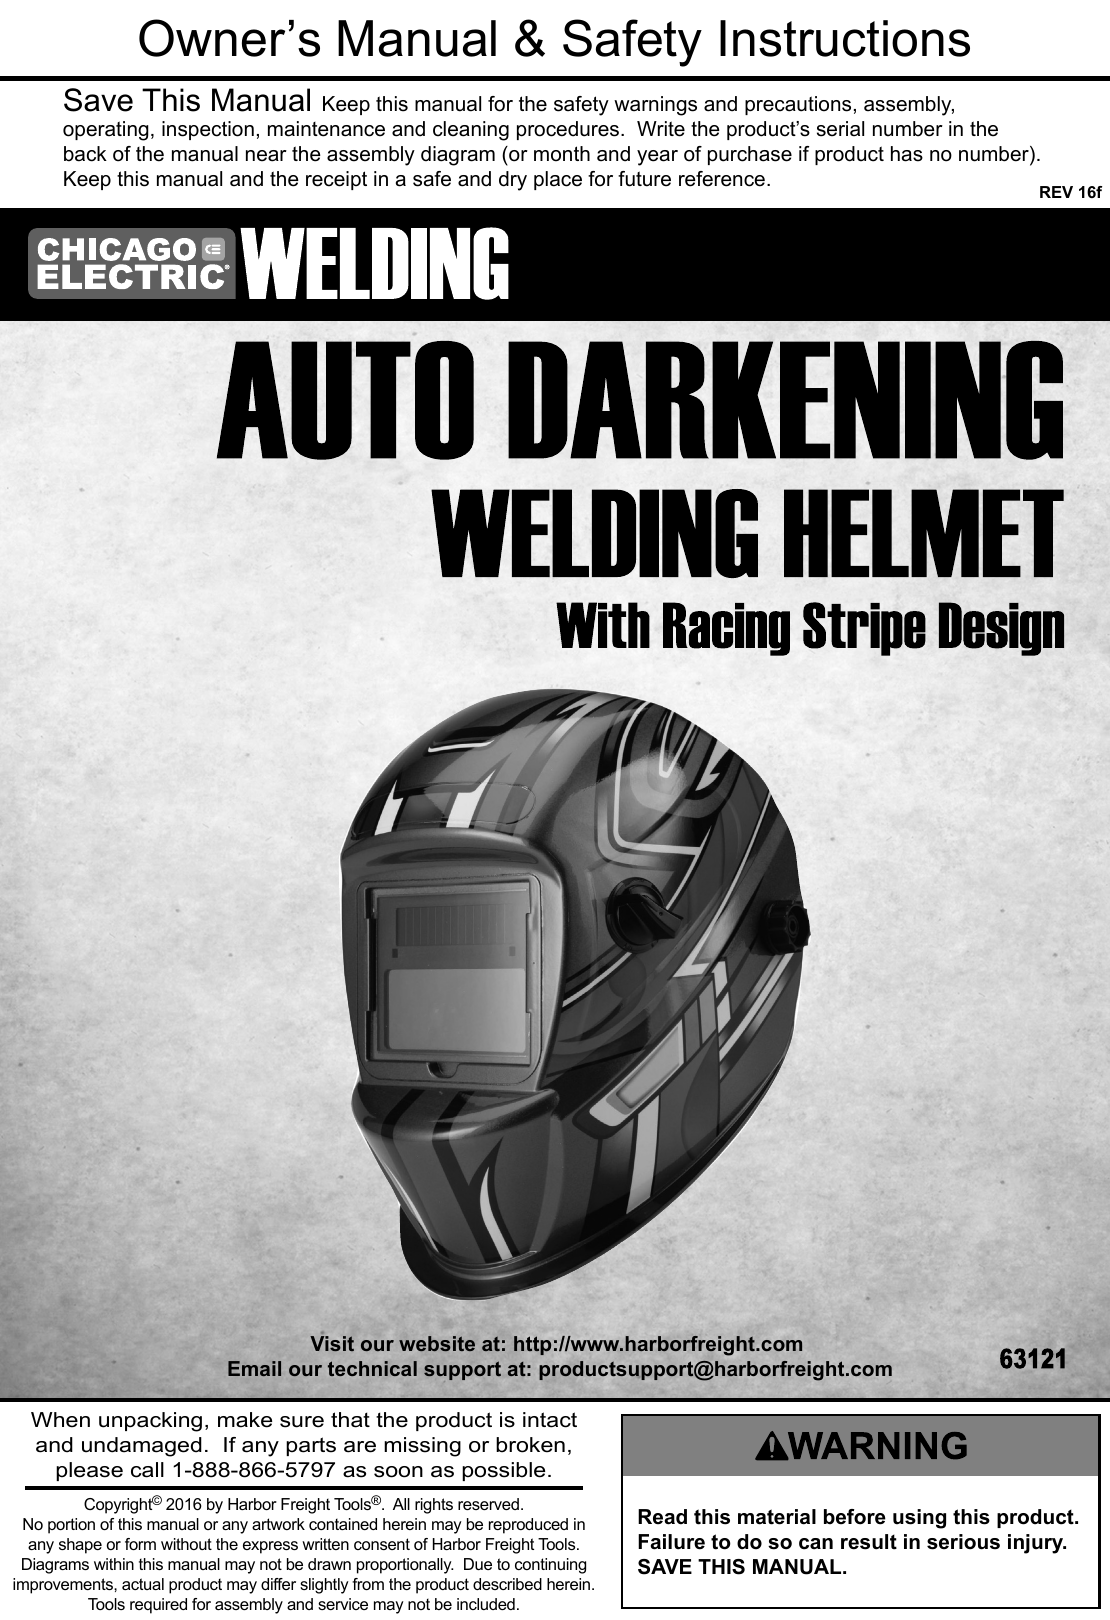 Manual For The 63121 Auto Darkening Welding Helmet With Racing